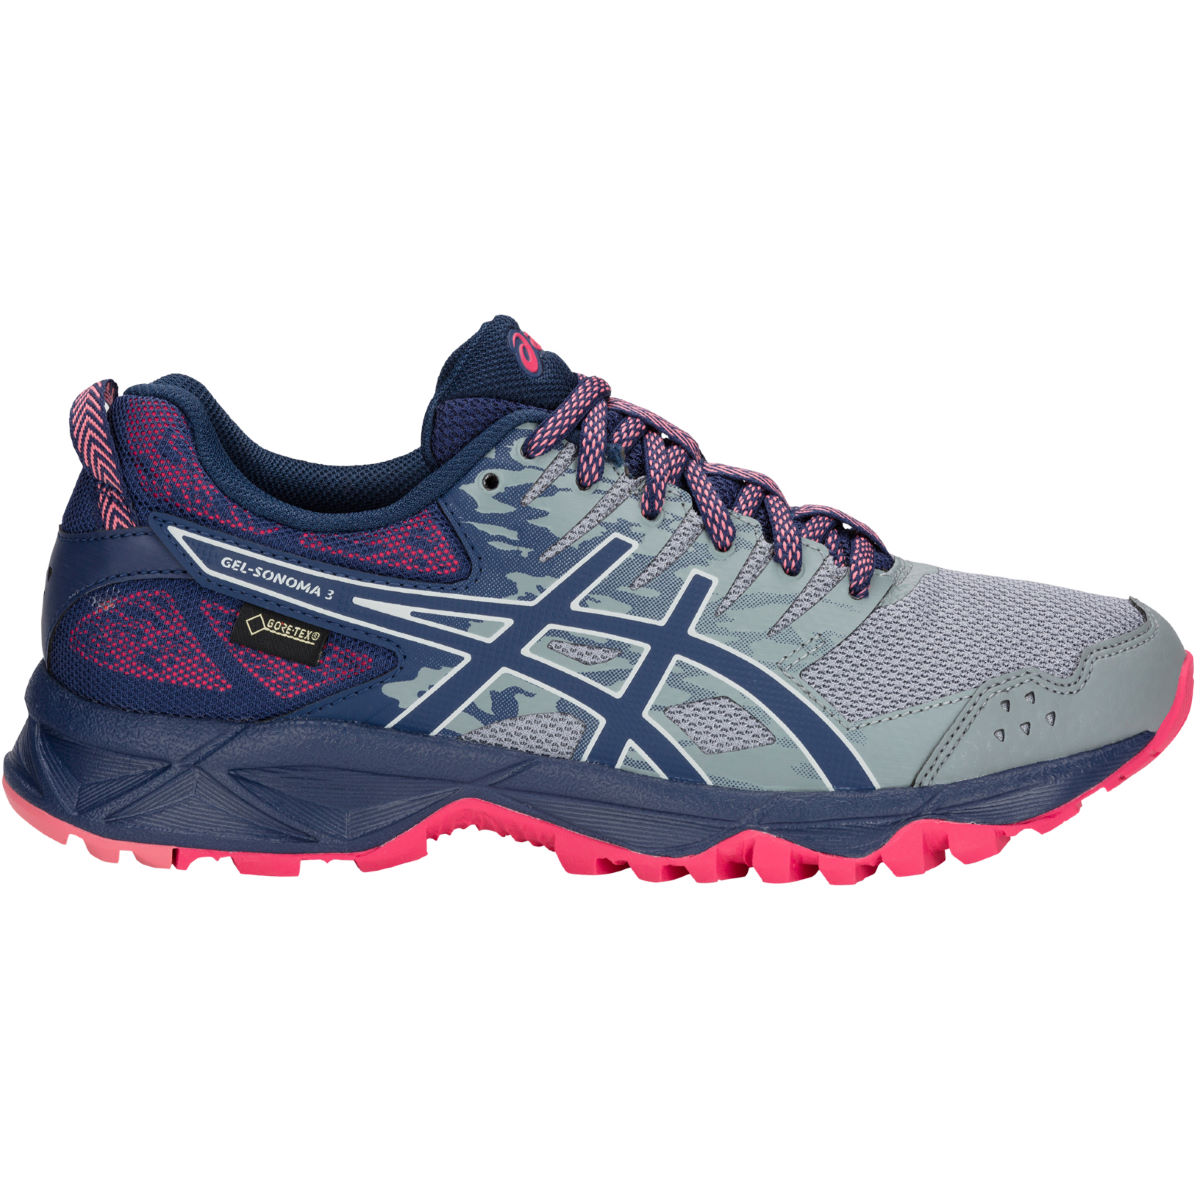 Asics Women's Gel Sonoma 3 GTX Shoes - Zapatillas de trail running